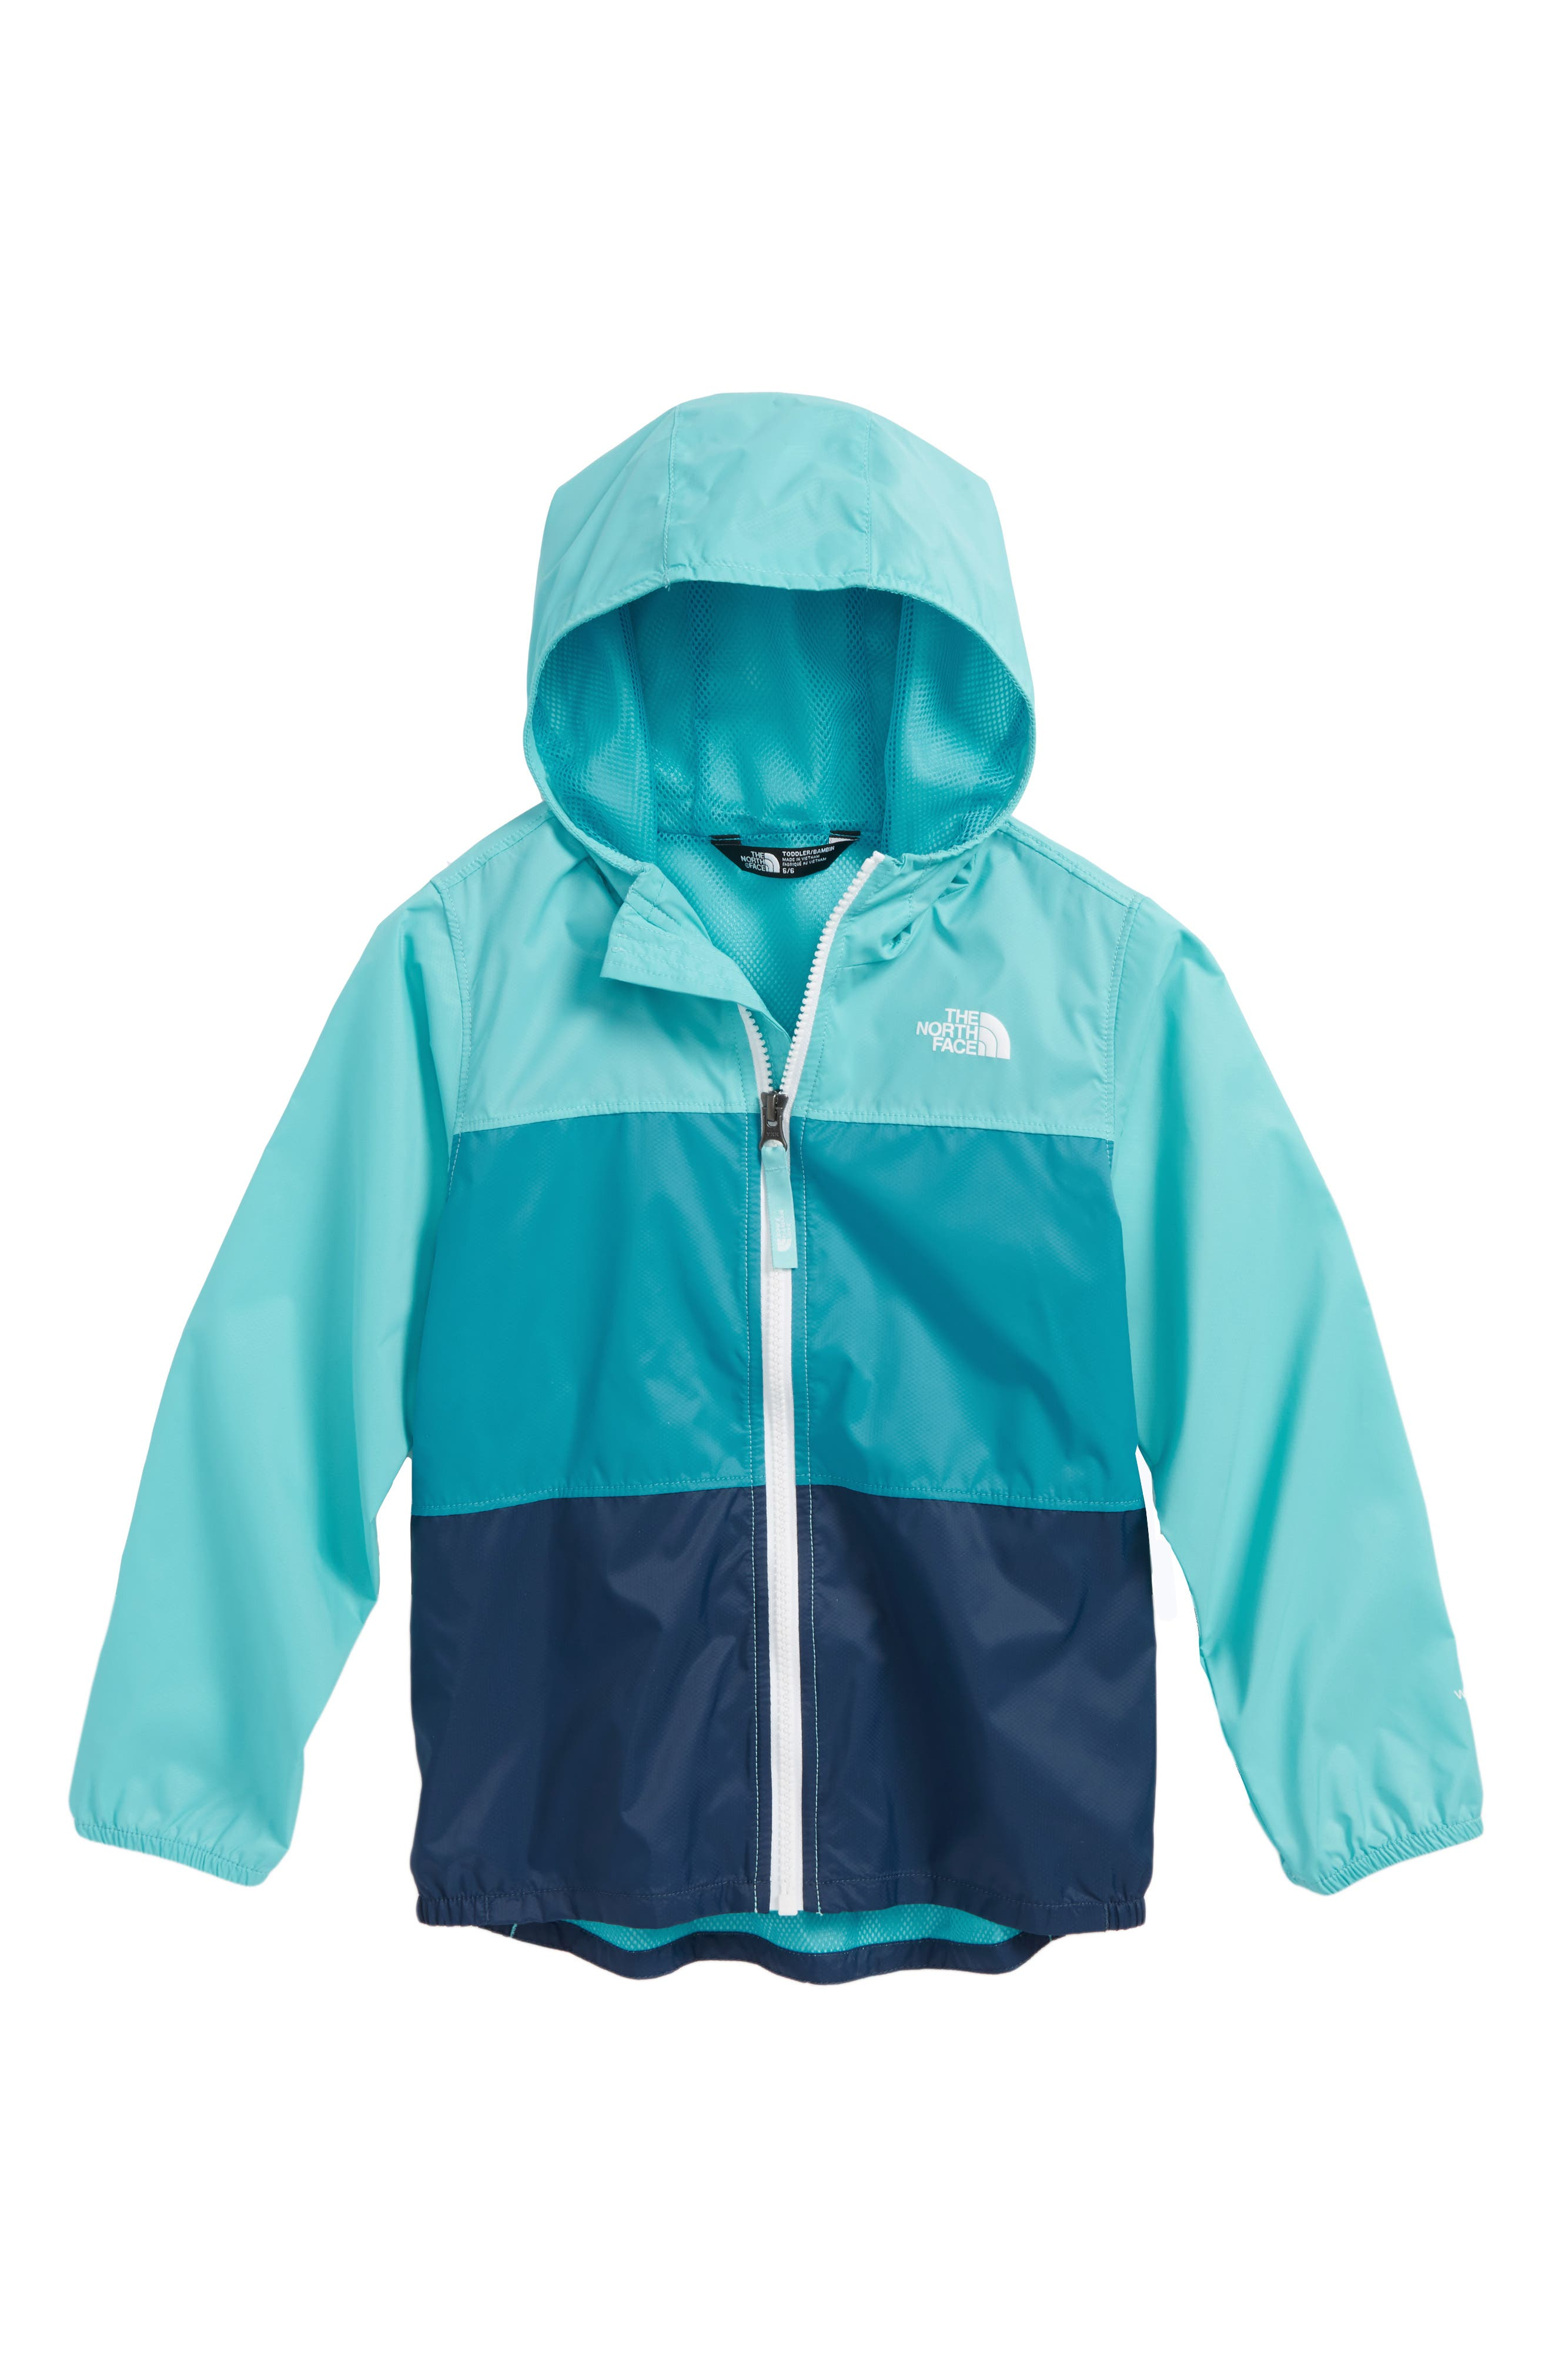 Alternate Image 1 Selected - The North Face Flurry Water & Wind Repellant Nylon Jacket (Toddler Girls & Little Girls)